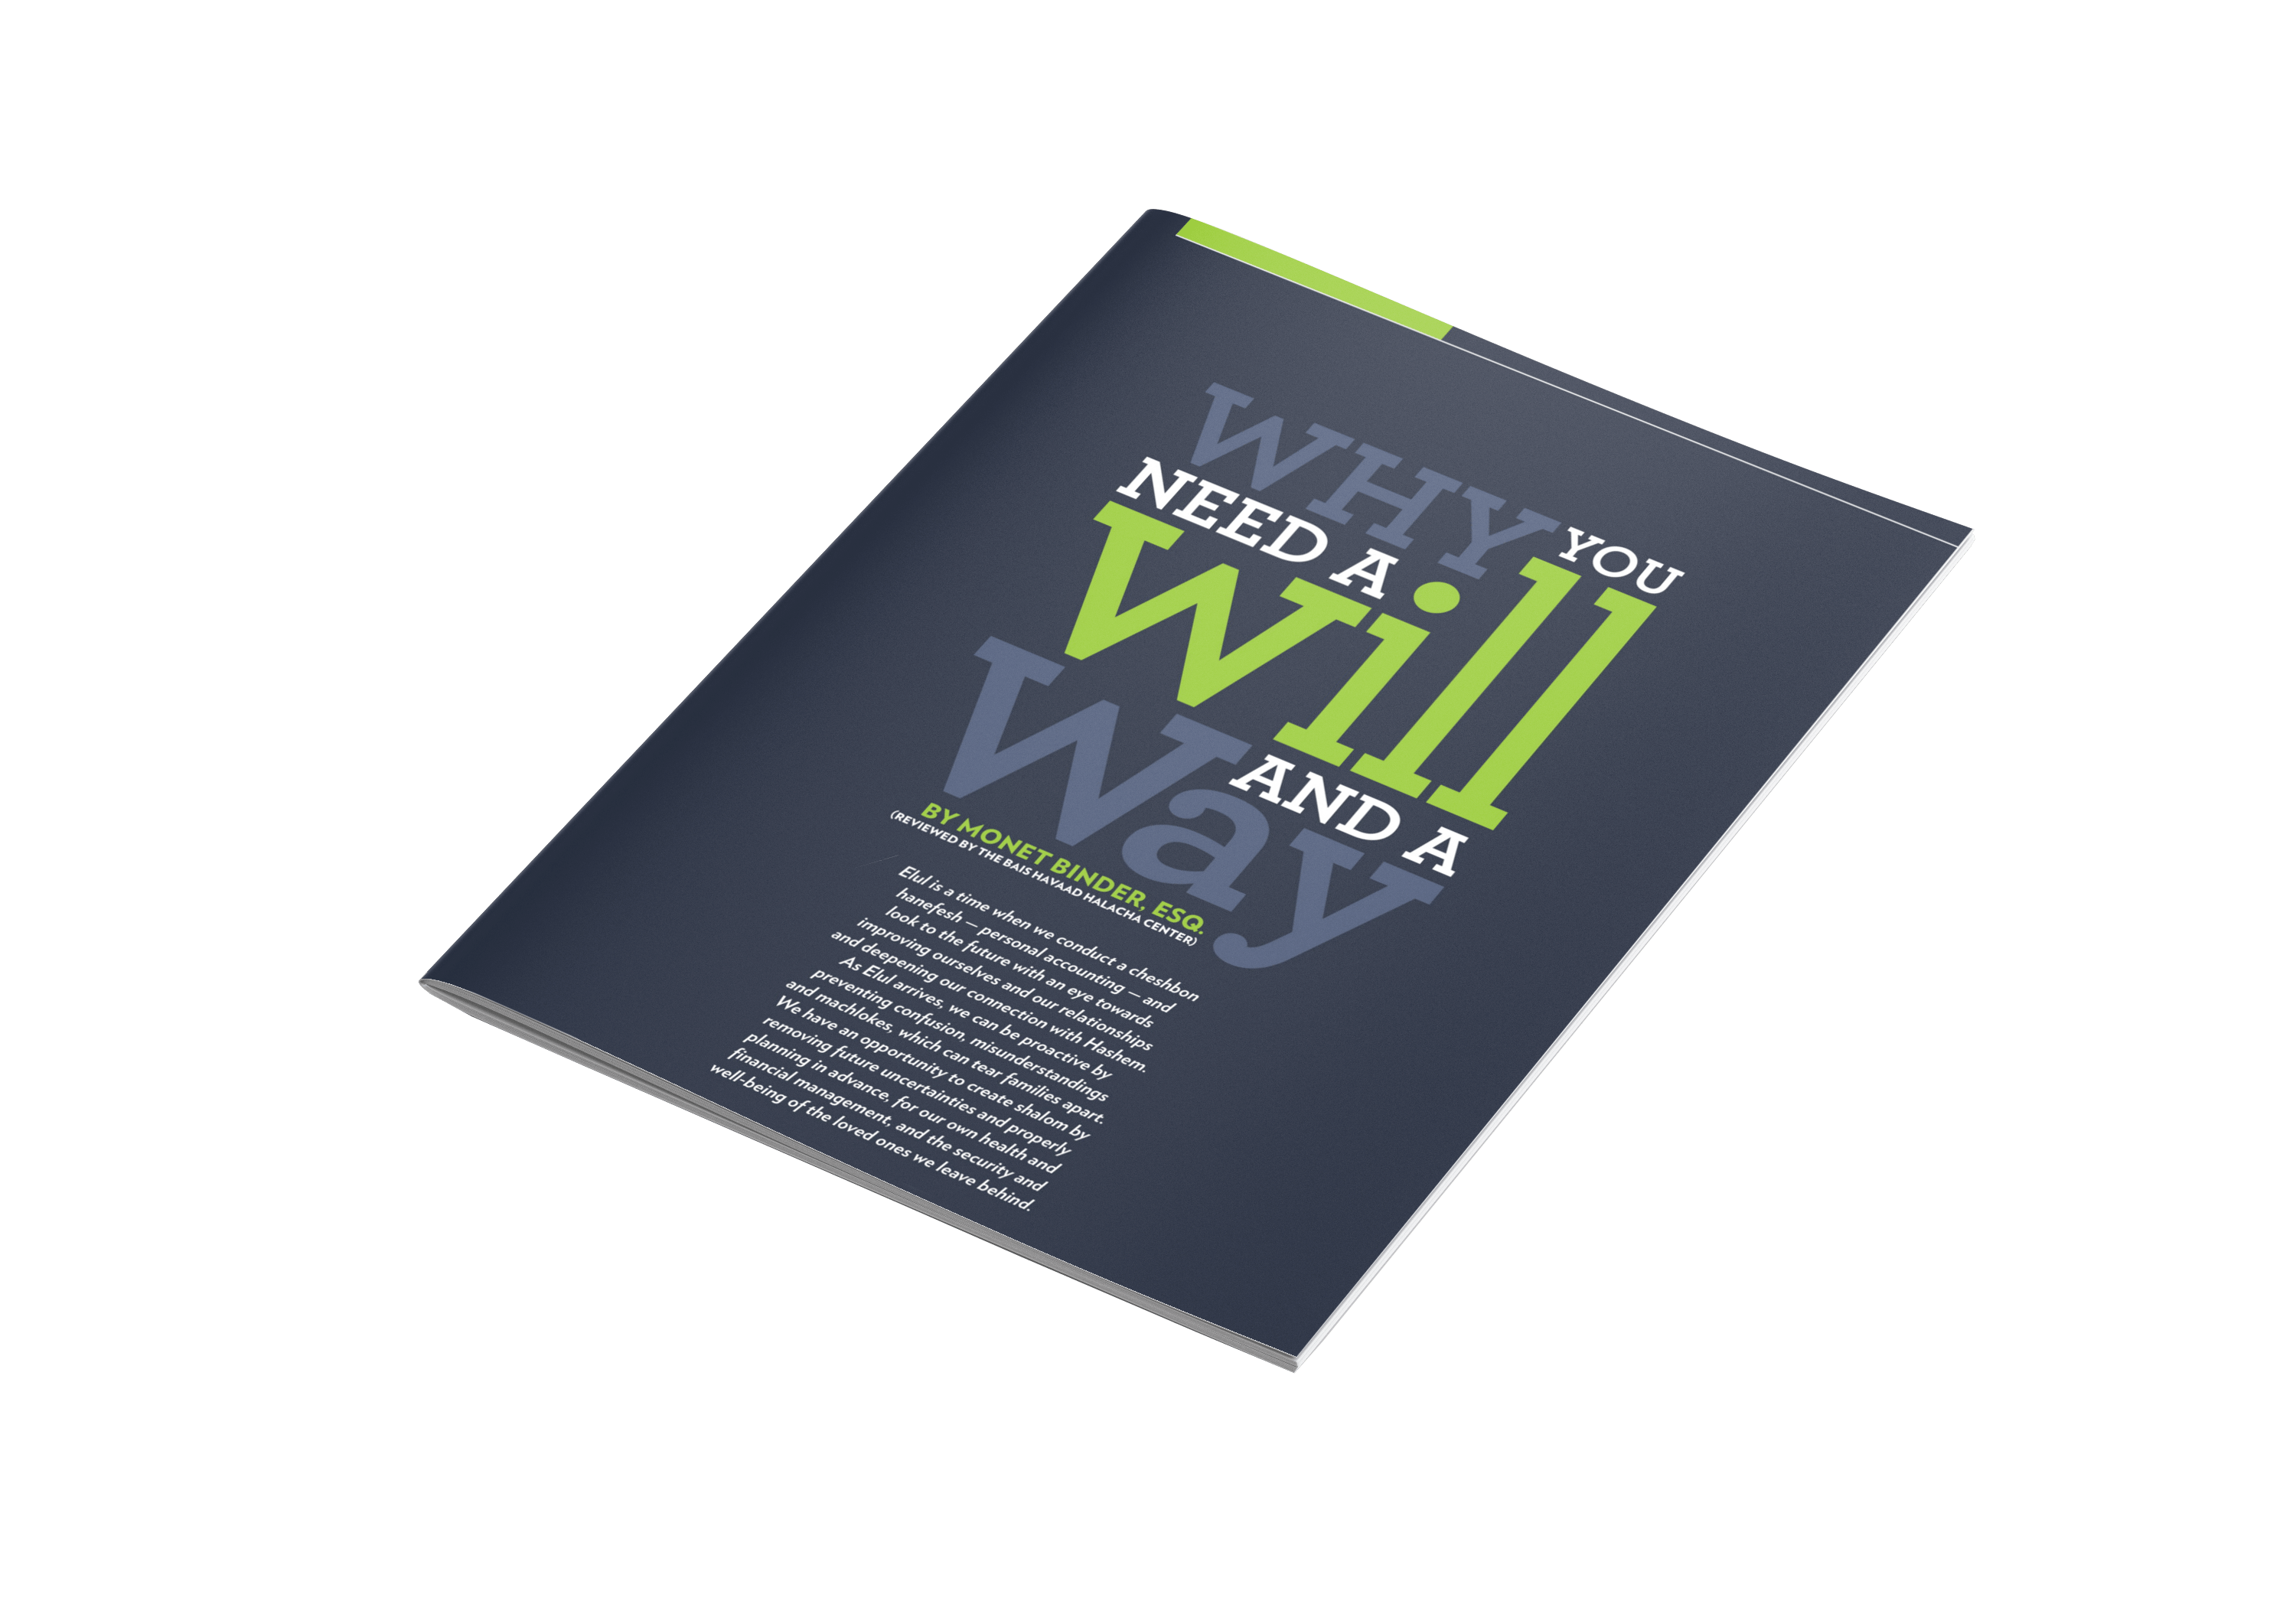 Will and a way pamphlet mockup